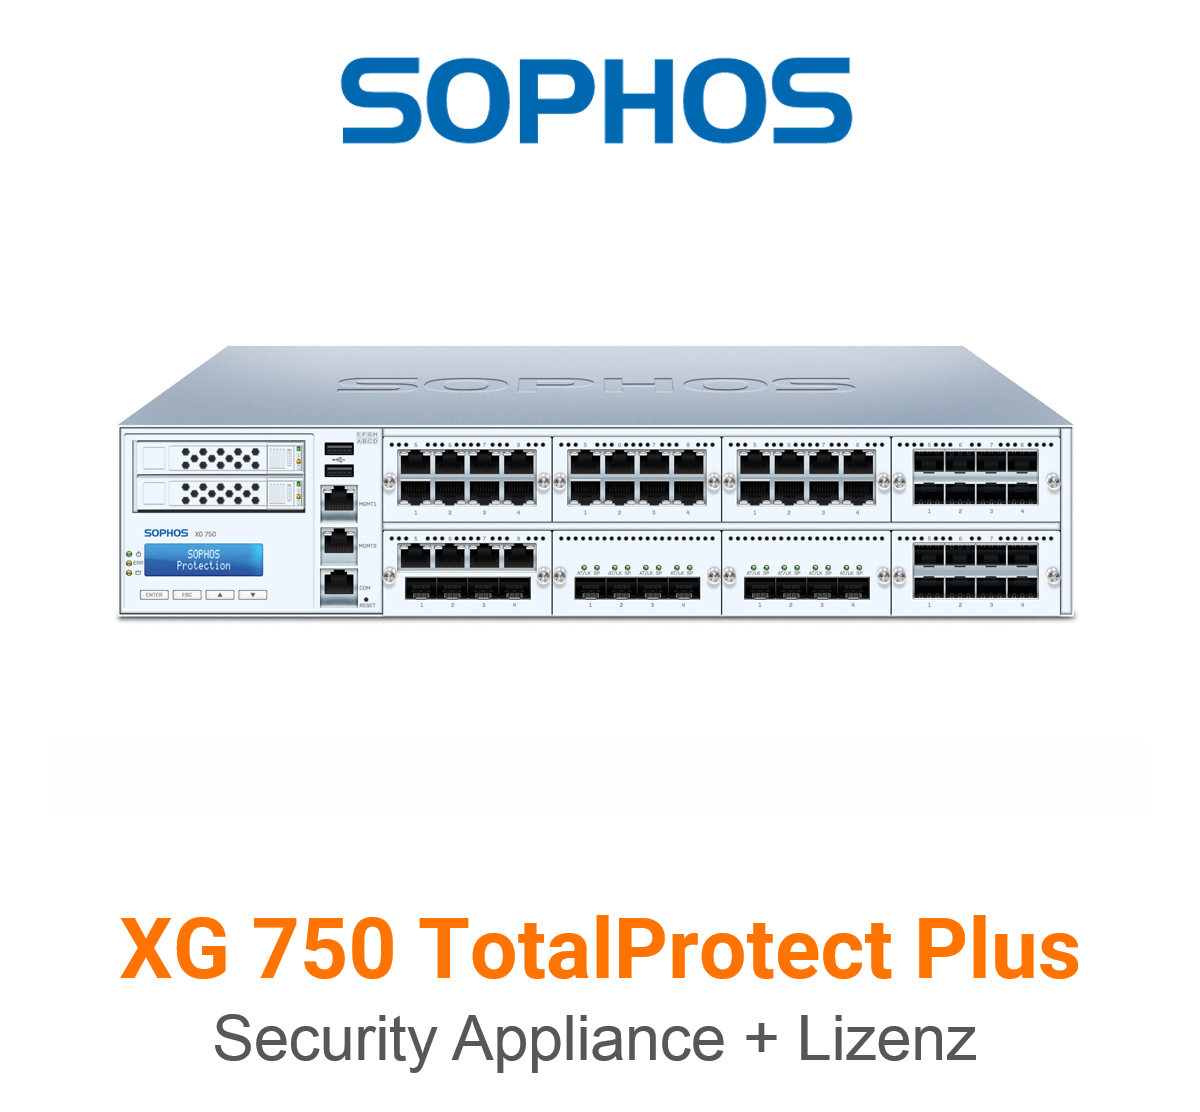 Sophos XG 750 TotalProtect Plus Bundle (Hardware + Lizenz)